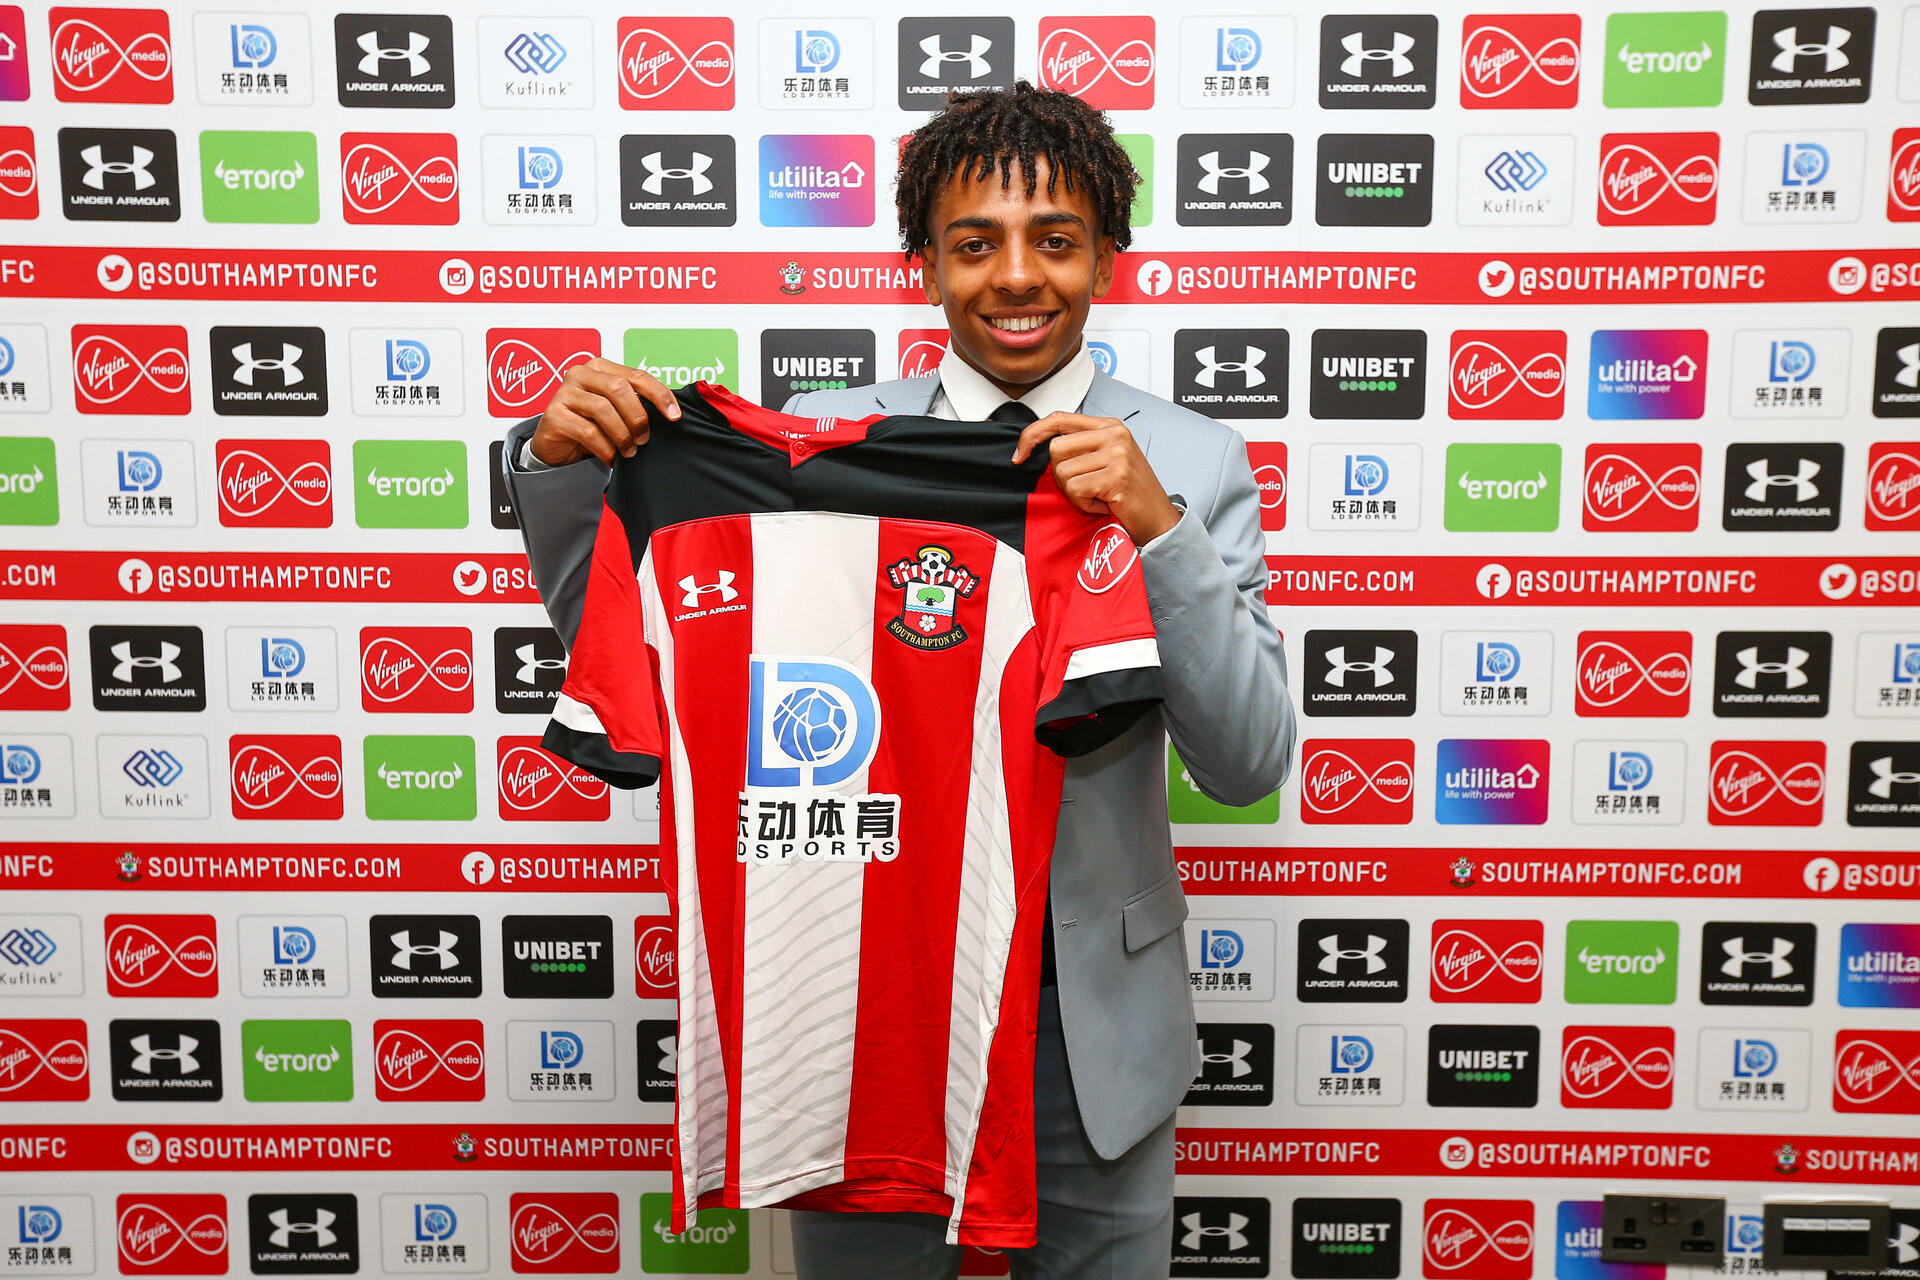 SOUTHAMPTON, ENGLAND - JULY 01: Celeb Watts  signs his pro contract extension with Southampton FC on July 01, 2018 pictured at St Marys Stadium, Southampton, England. (Photo by James Bridle - Southampton FC/Southampton FC via Getty Images)